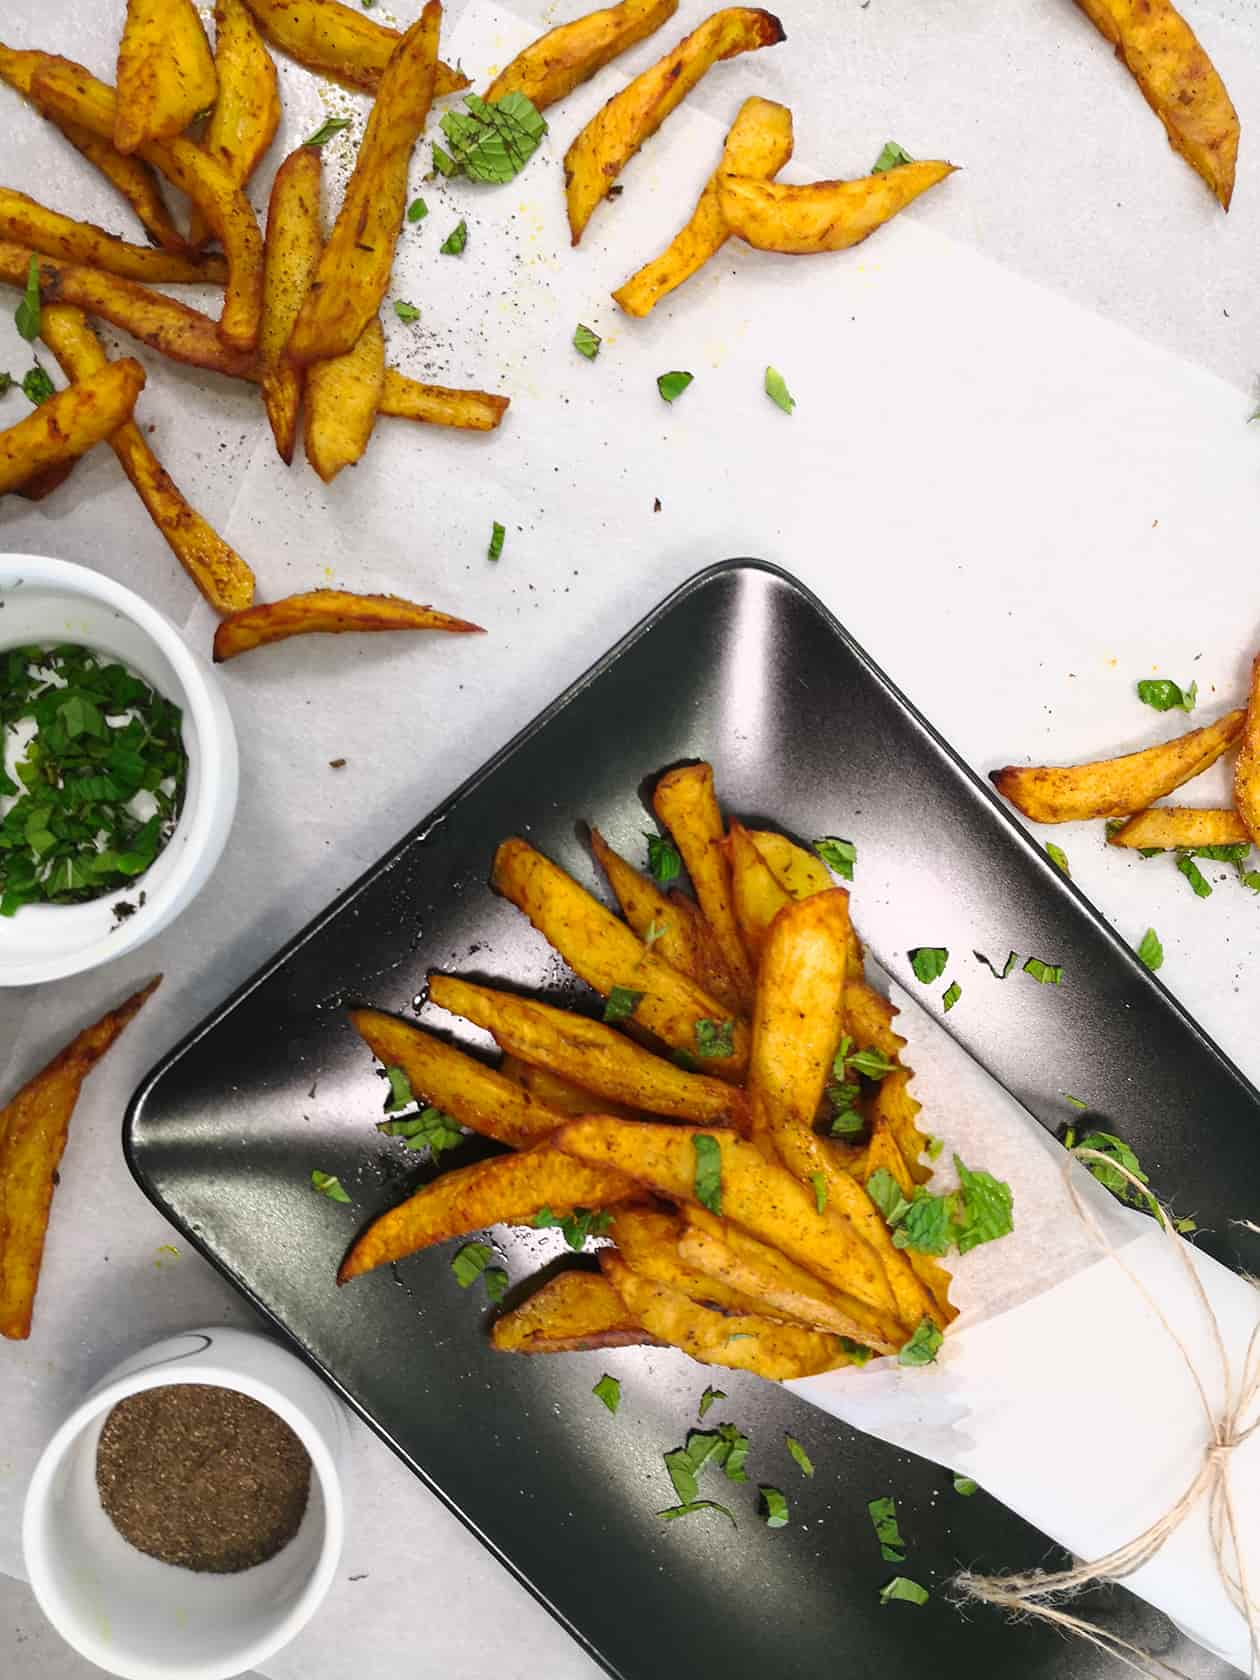 Turmeric-fries-homemade-vegan-tzatziki-dip4-starters-sides-recipes